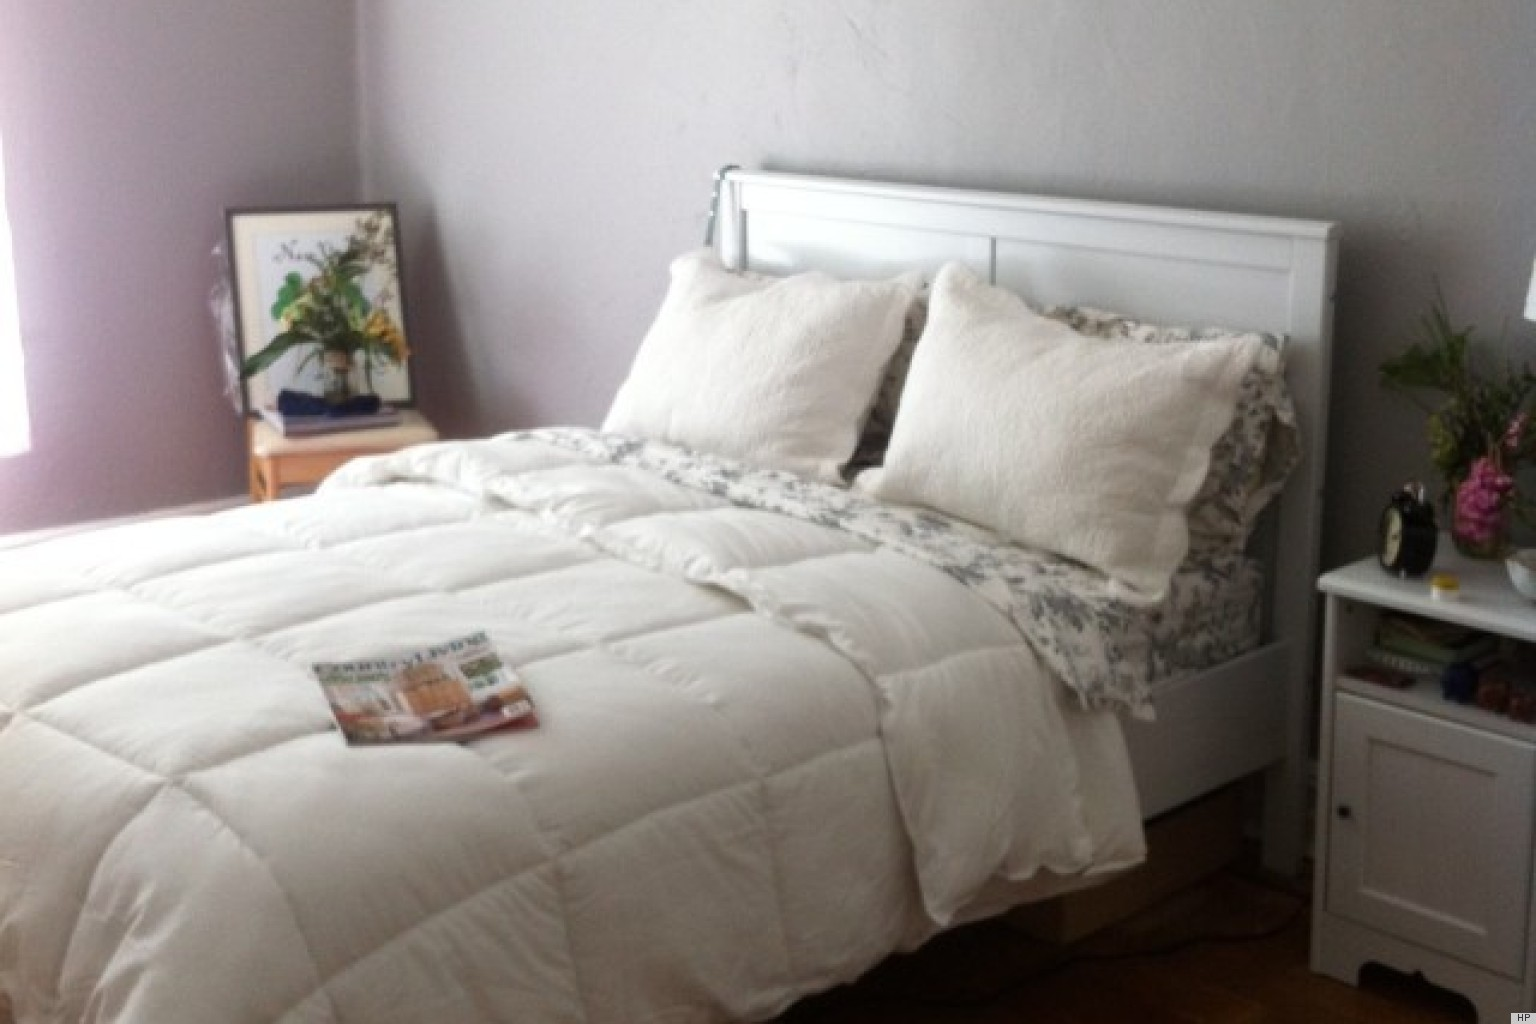 Offer Bedroom Decorating Ideas  PHOTOS    HuffPost. HuffPost Home And  Hi Sugarplum   Offer Bedroom Decorating Ideas